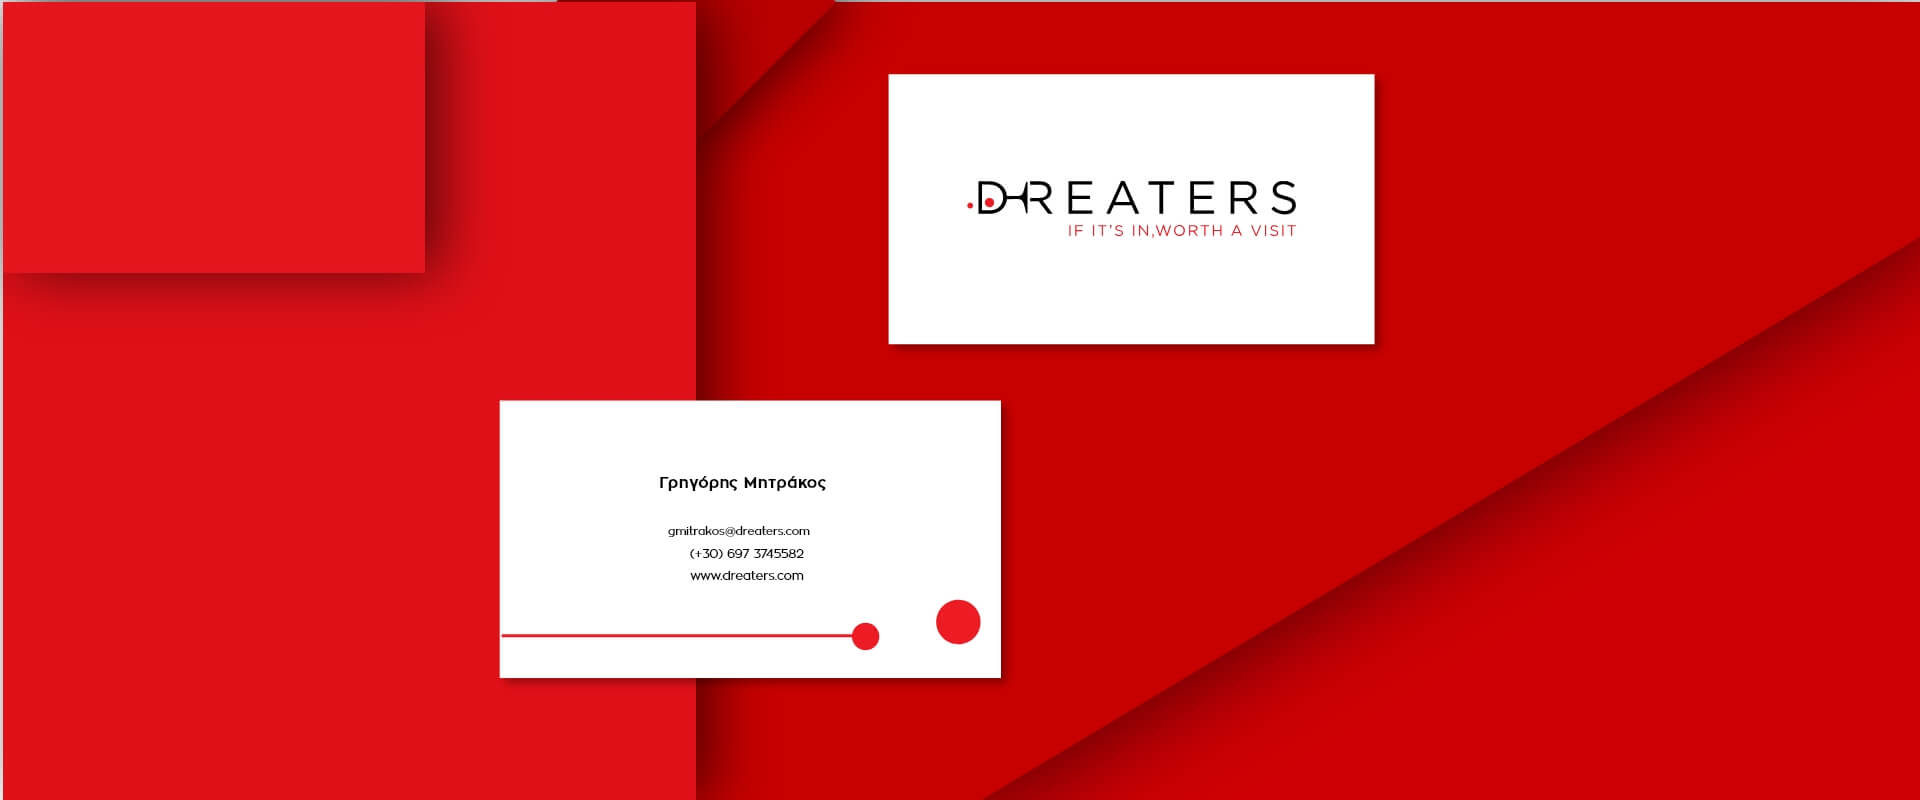 Dreaters business card banner